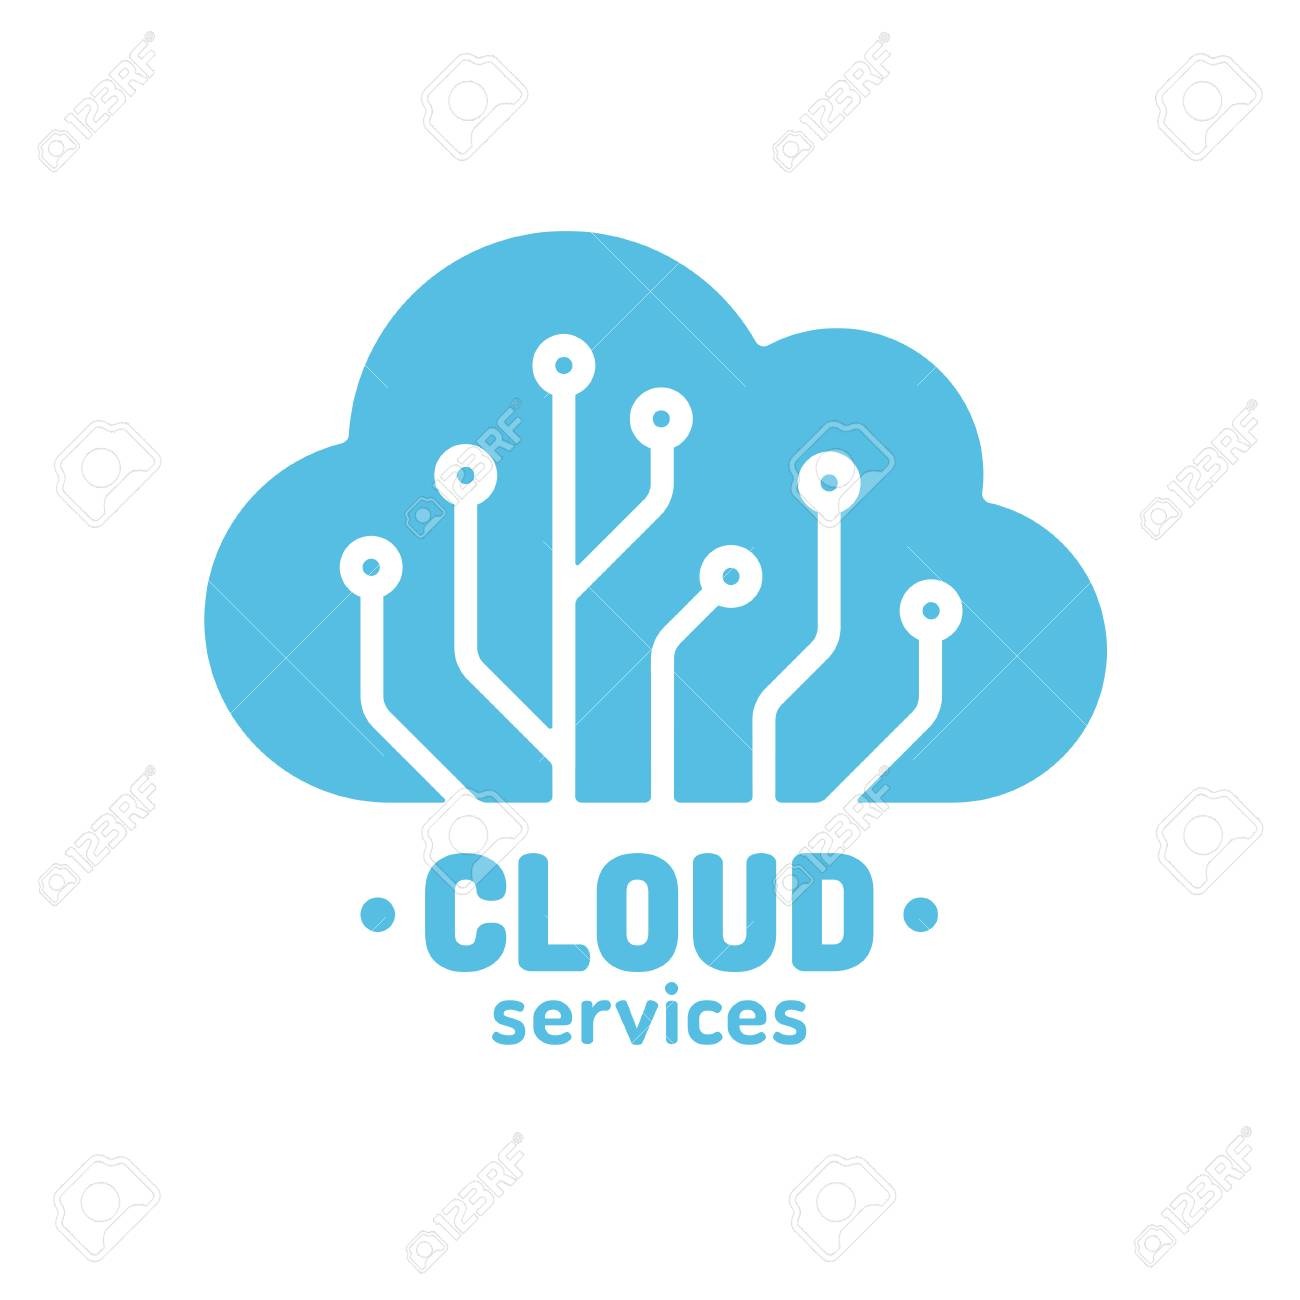 Cloud Technology Logo Simple Silhouette Wit Circuit Board Pattern Digital Storage And Computing